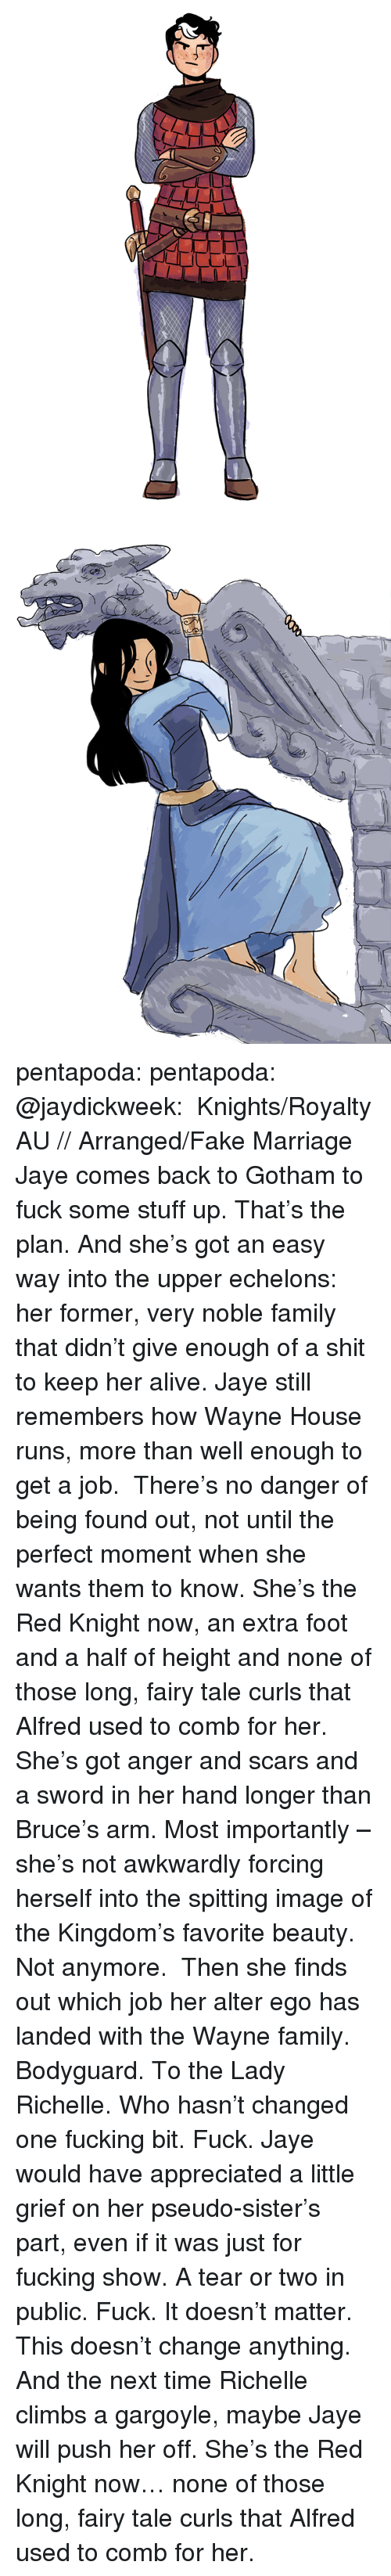 alter ego: pentapoda:  pentapoda:  @jaydickweek:  Knights/Royalty AU // Arranged/Fake Marriage Jaye comes back to Gotham to fuck some stuff up. That's the plan. And she's got an easy way into the upper echelons: her former, very noble family that didn't give enough of a shit to keep her alive. Jaye still remembers how Wayne House runs, more than well enough to get a job. There's no danger of being found out, not until the perfect moment whenshe wants them to know.She's the Red Knight now, an extra foot and a half of height and none of those long, fairy tale curls that Alfred used to comb for her. She's got anger and scars and a sword in her hand longer than Bruce's arm. Most importantly – she's not awkwardly forcing herself into the spitting image of the Kingdom's favorite beauty. Not anymore. Then she finds outwhich job her alter ego has landed with the Wayne family. Bodyguard. To the Lady Richelle. Who hasn't changed one fucking bit. Fuck. Jaye would have appreciated a little grief on her pseudo-sister's part, even if it was just for fucking show. A tear or two in public.Fuck. It doesn't matter. This doesn't change anything. And the next time Richelle climbs a gargoyle, maybe Jaye will push her off.     She's the Red Knight now… none of those long, fairy tale curls that Alfred used to comb for her.